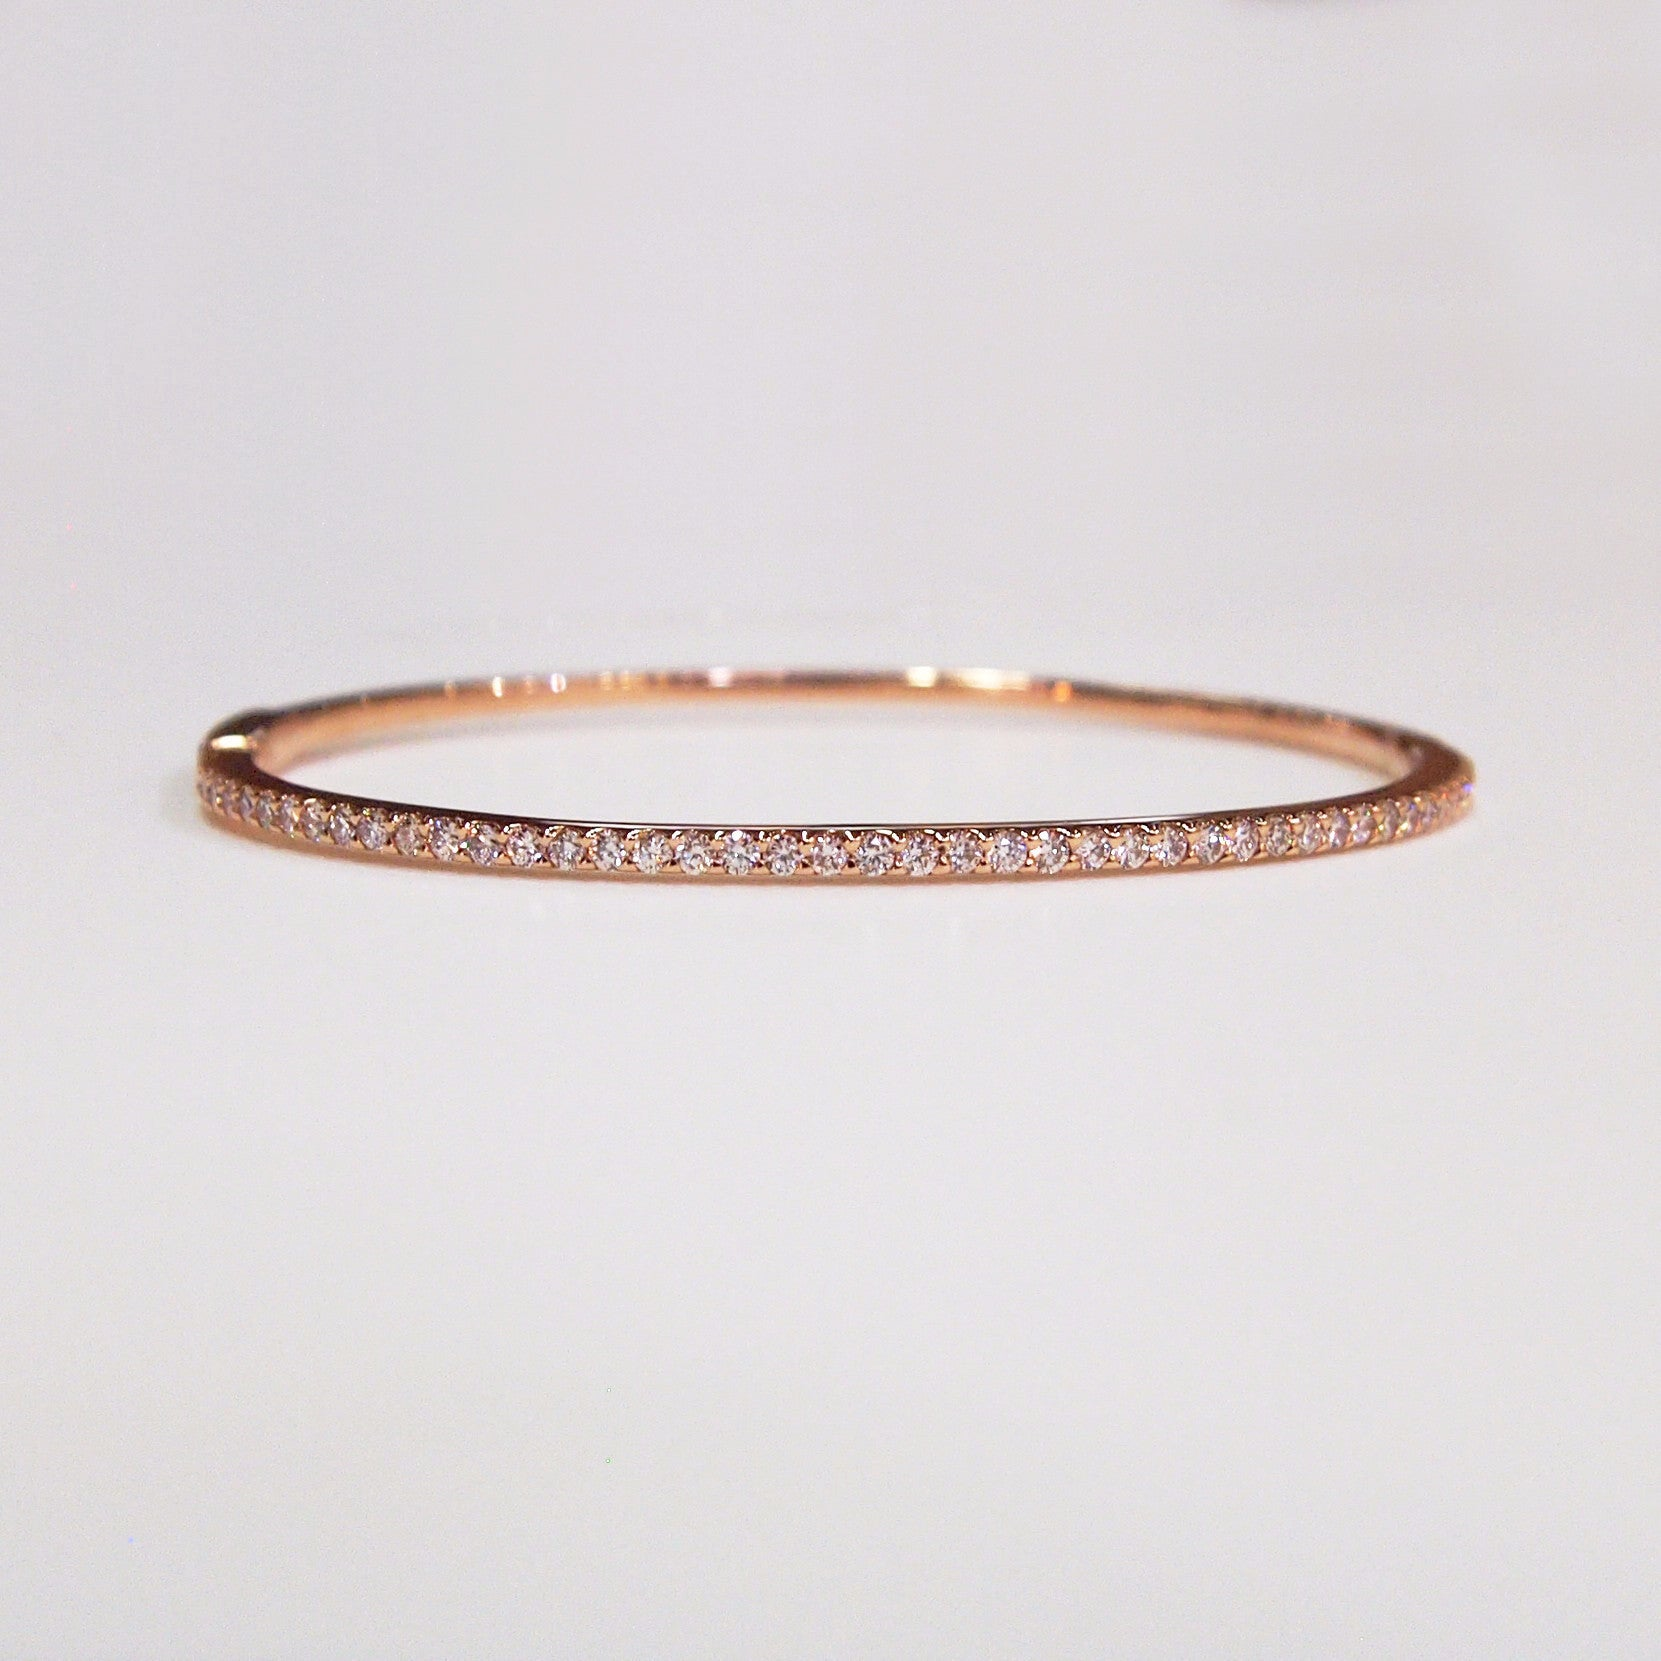 bangles with open nl cuff rg in diamond jewelry fascinating bracelet rose flower fdcmj bracelets gold bangle white